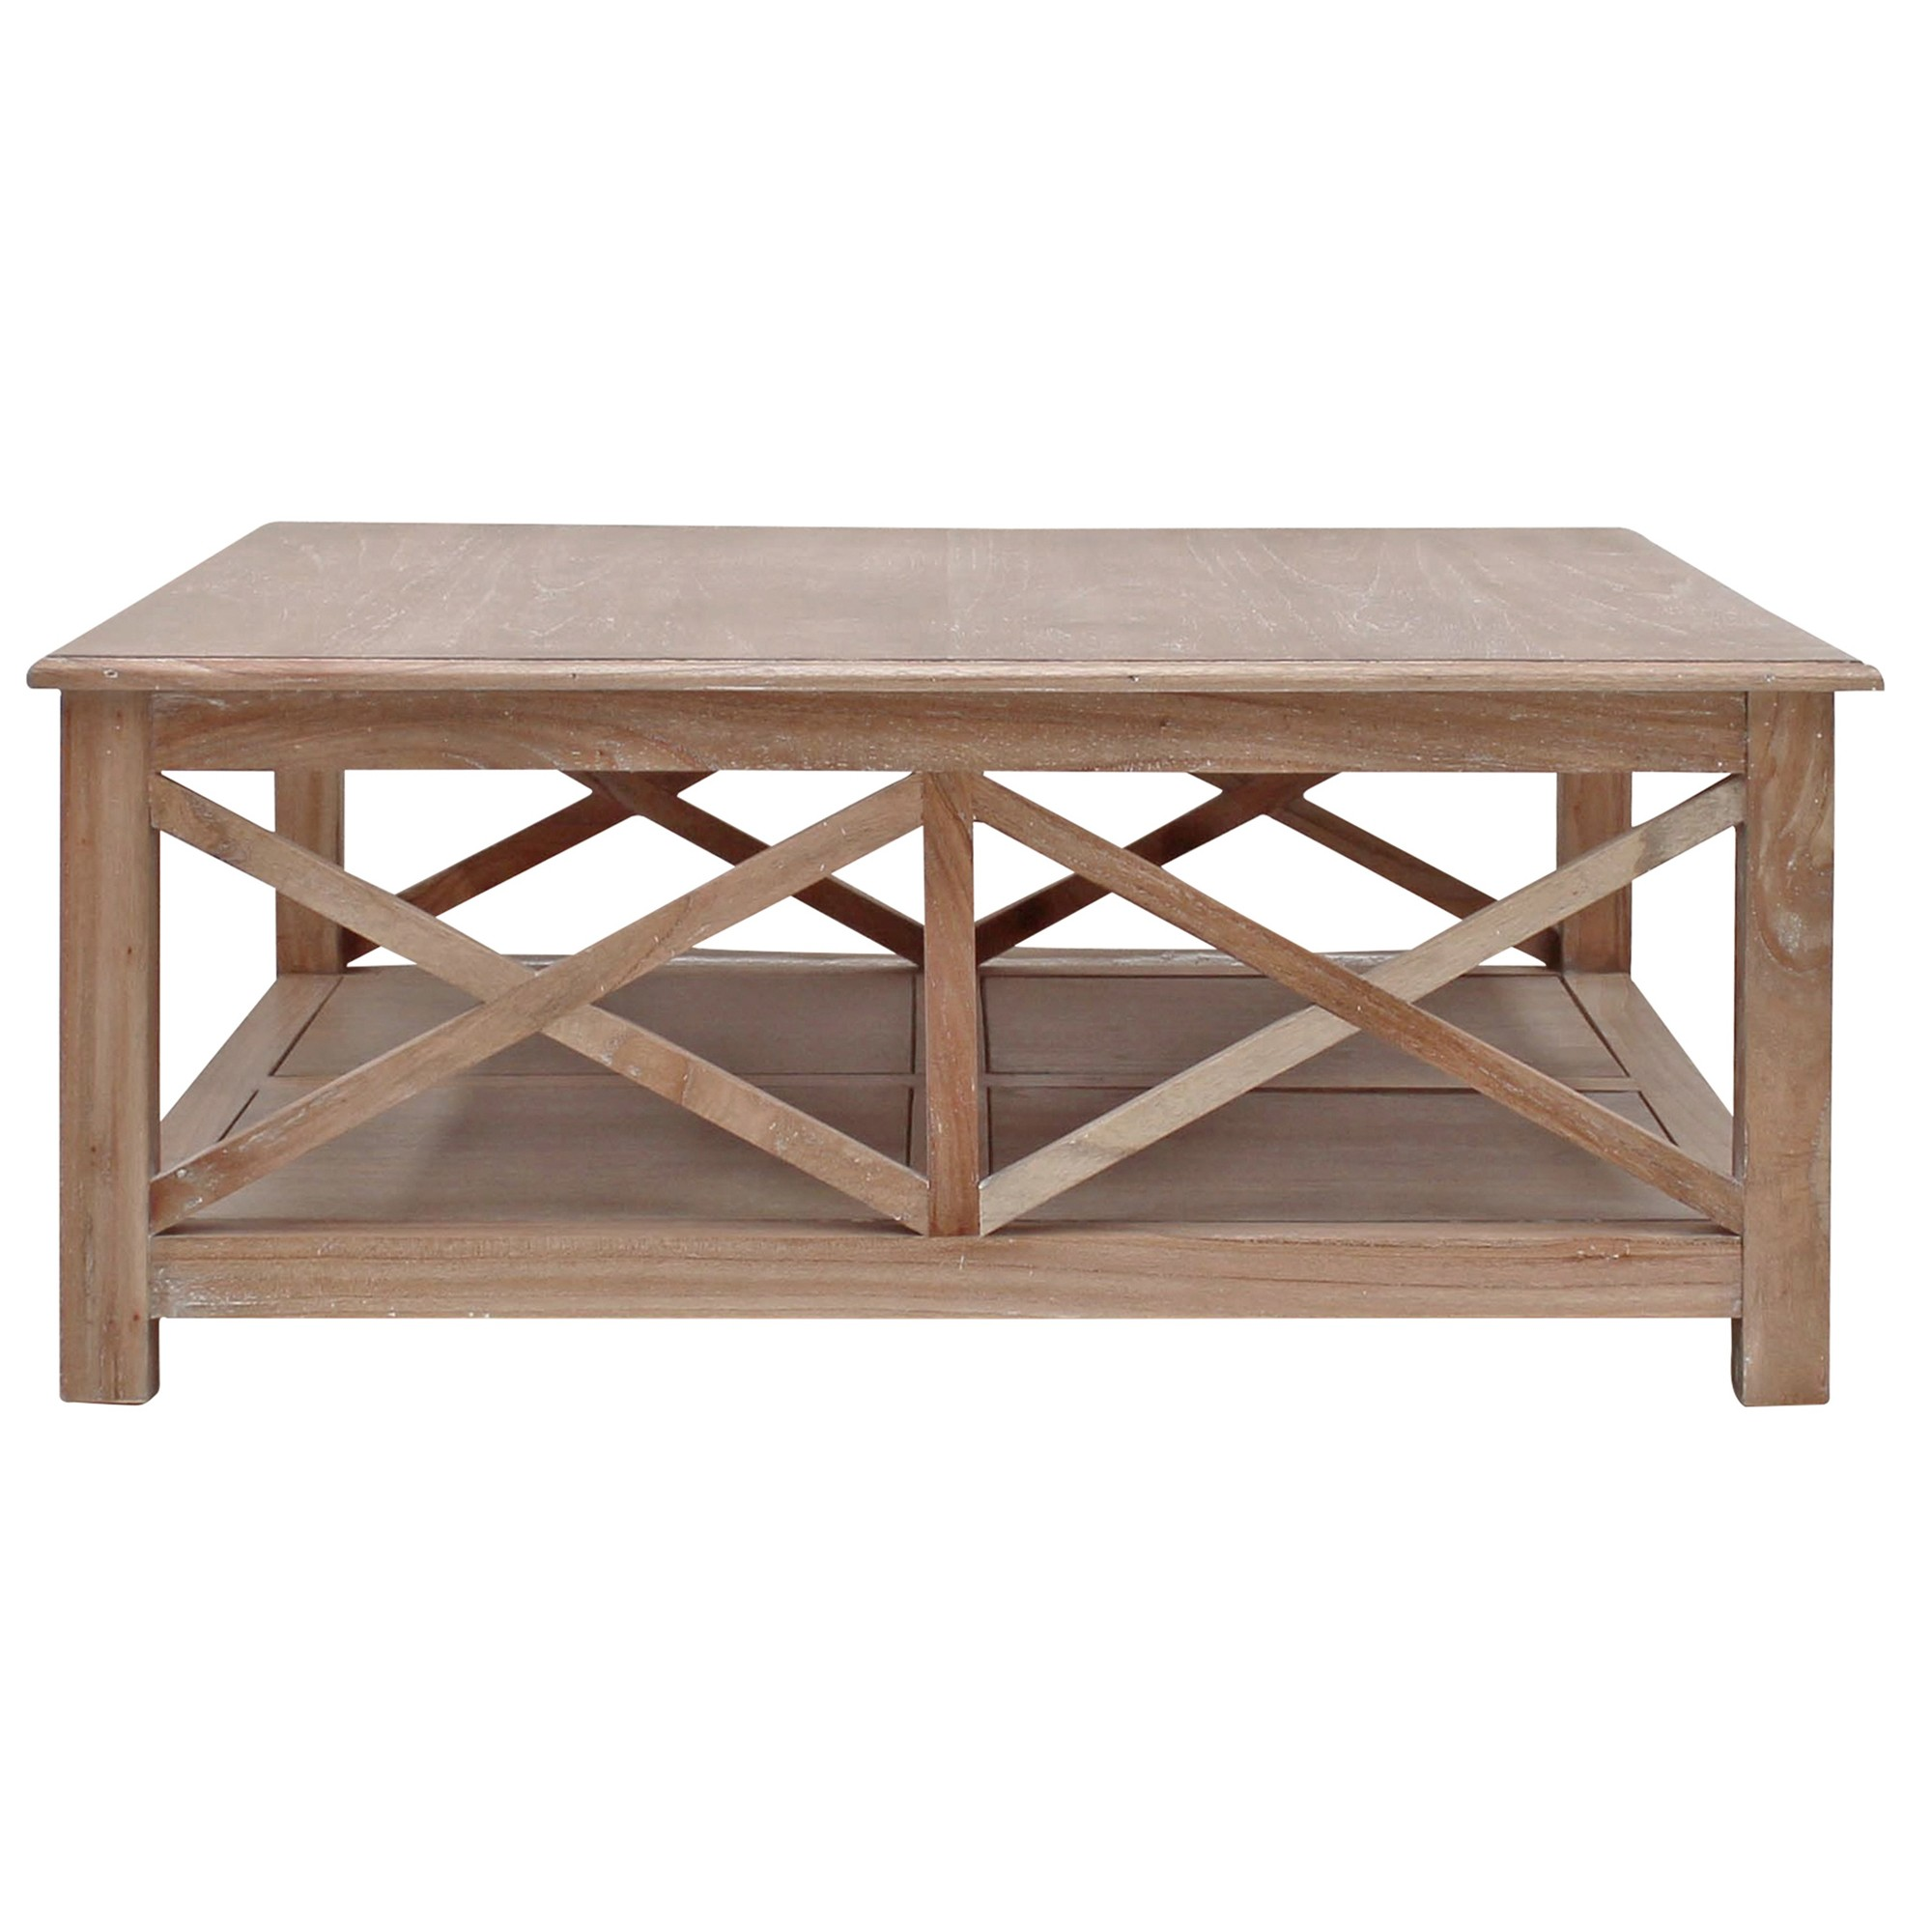 Belley Hand Crafted Mindi Wood Coffee Table with Shelf, 110cm, Weathered Oak